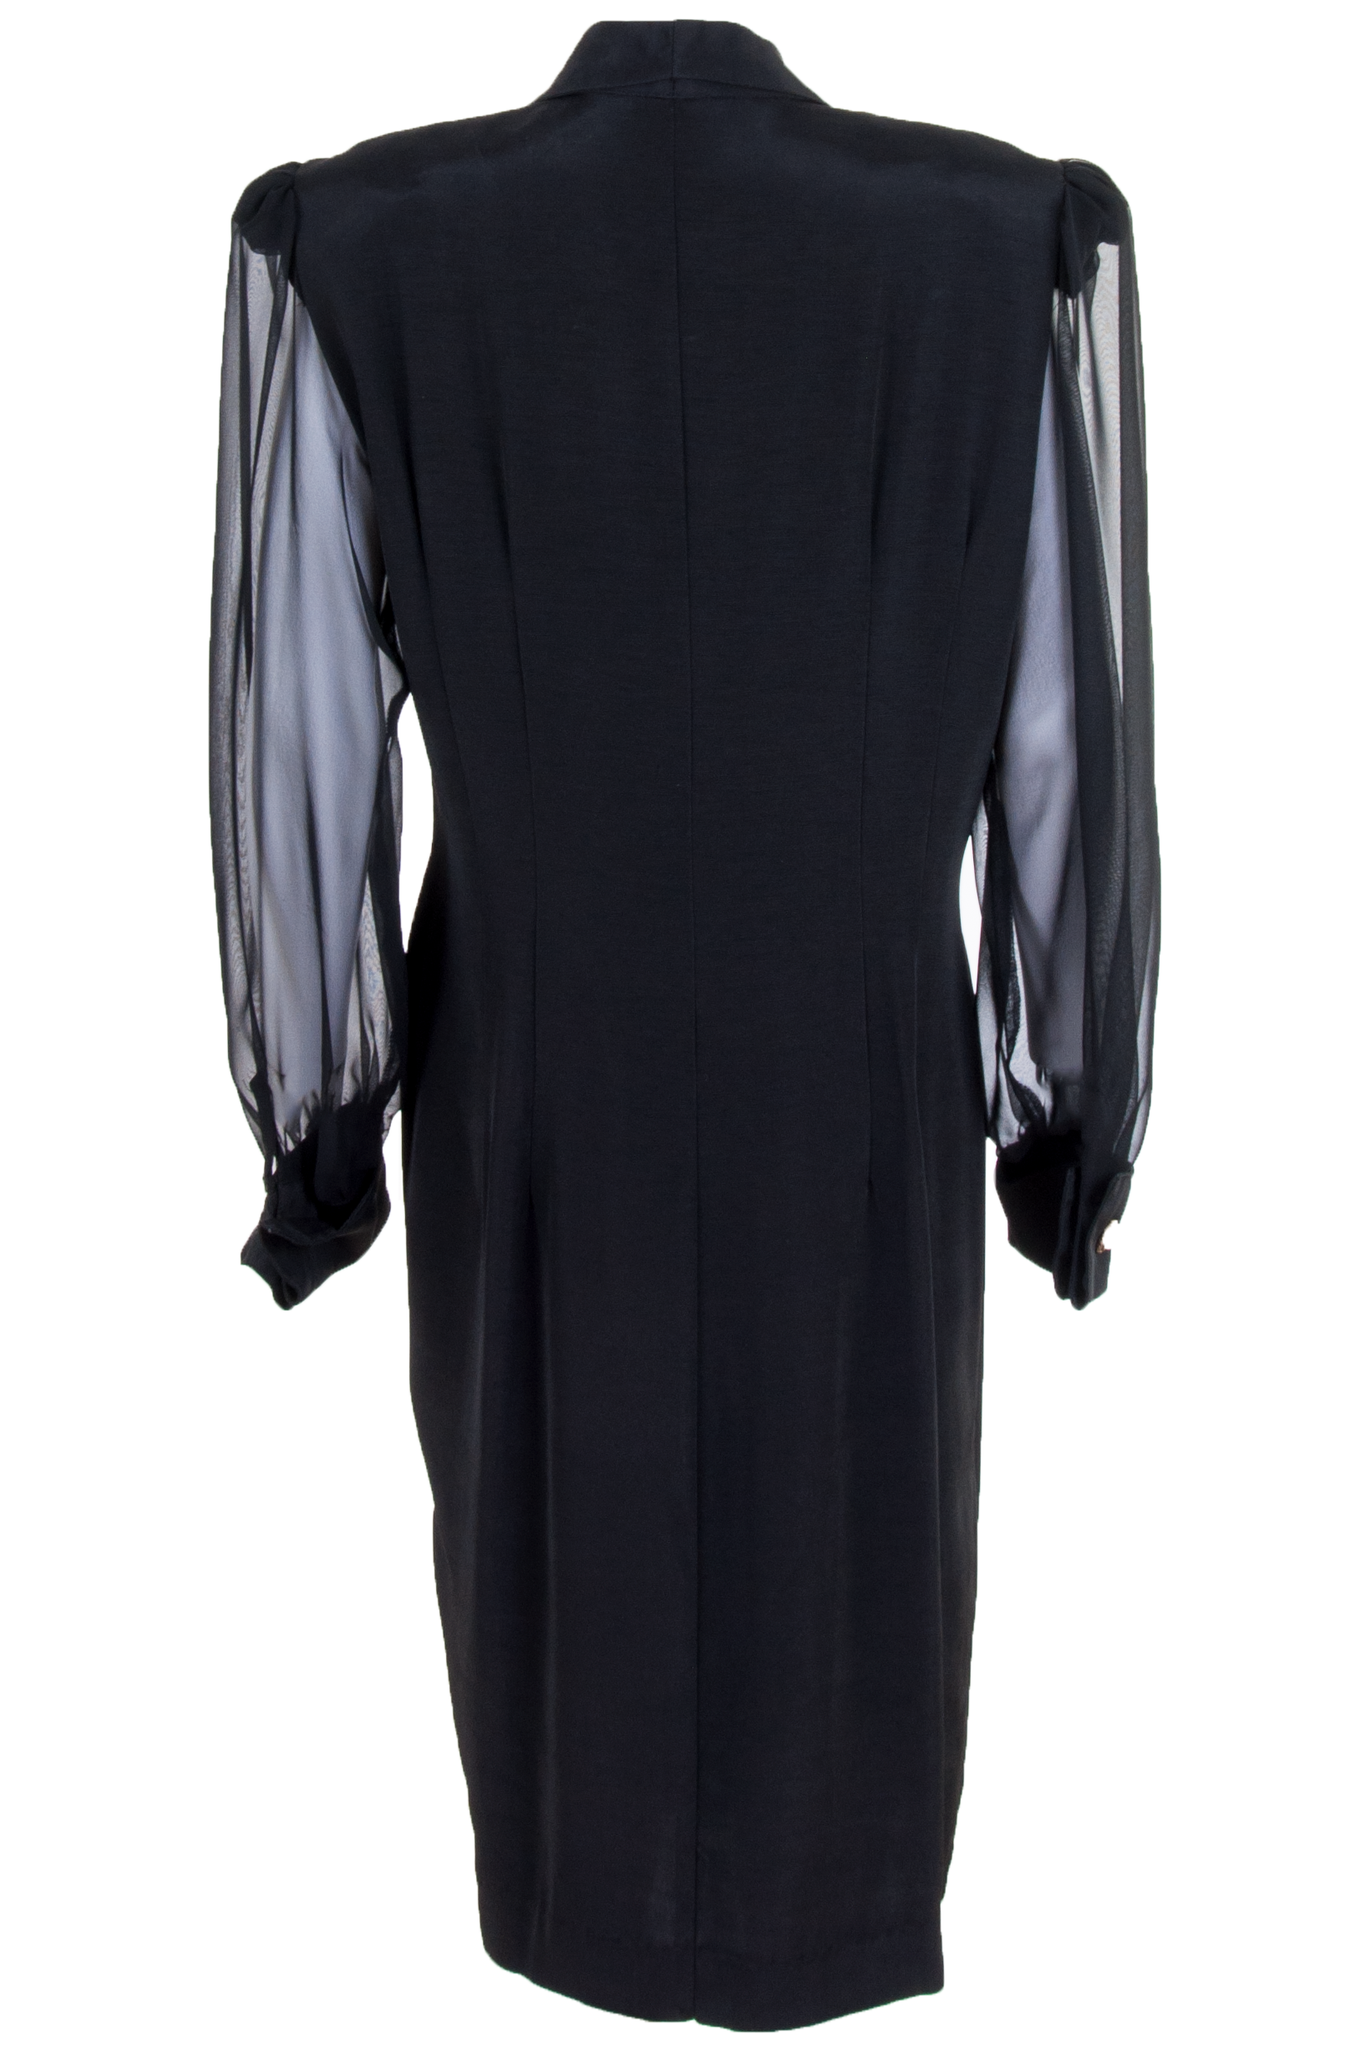 vintage black dress with sheer sleeves